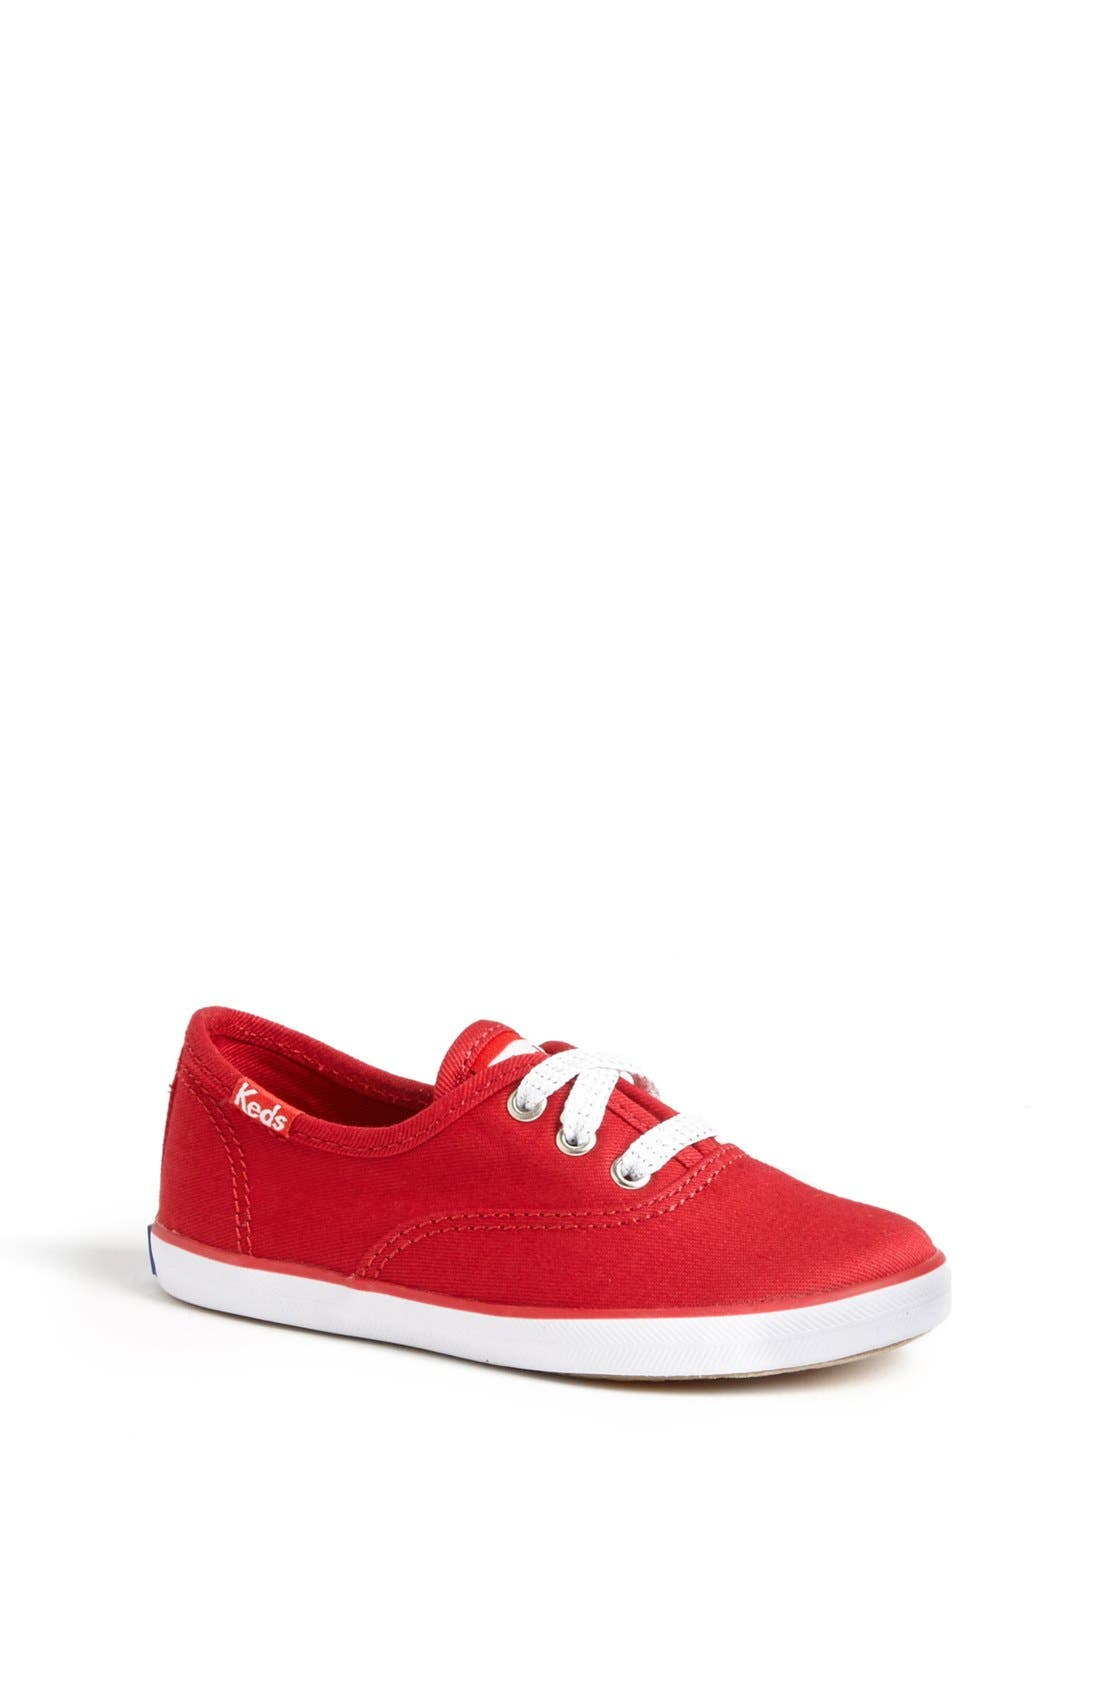 Main Image - Keds® 'Champion K' Sneaker (Toddler, Little Kid & Big Kid)